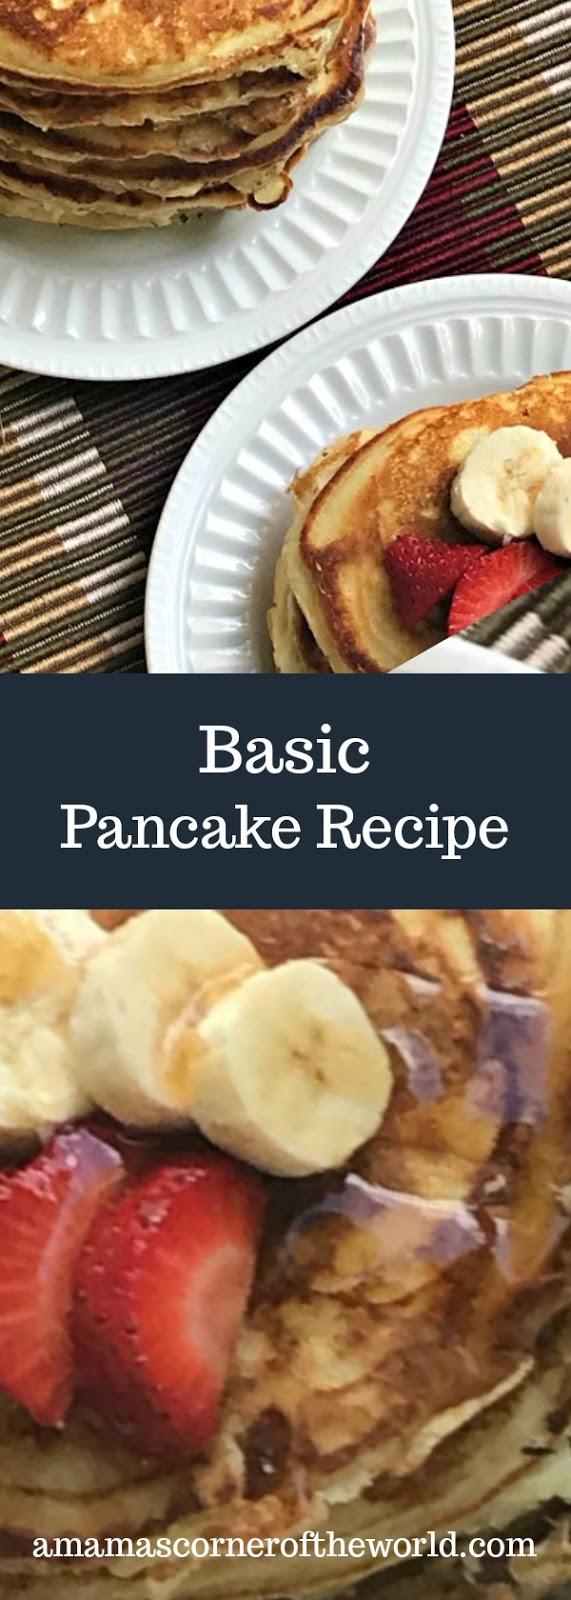 Pinnable image for a basic pancake recipe